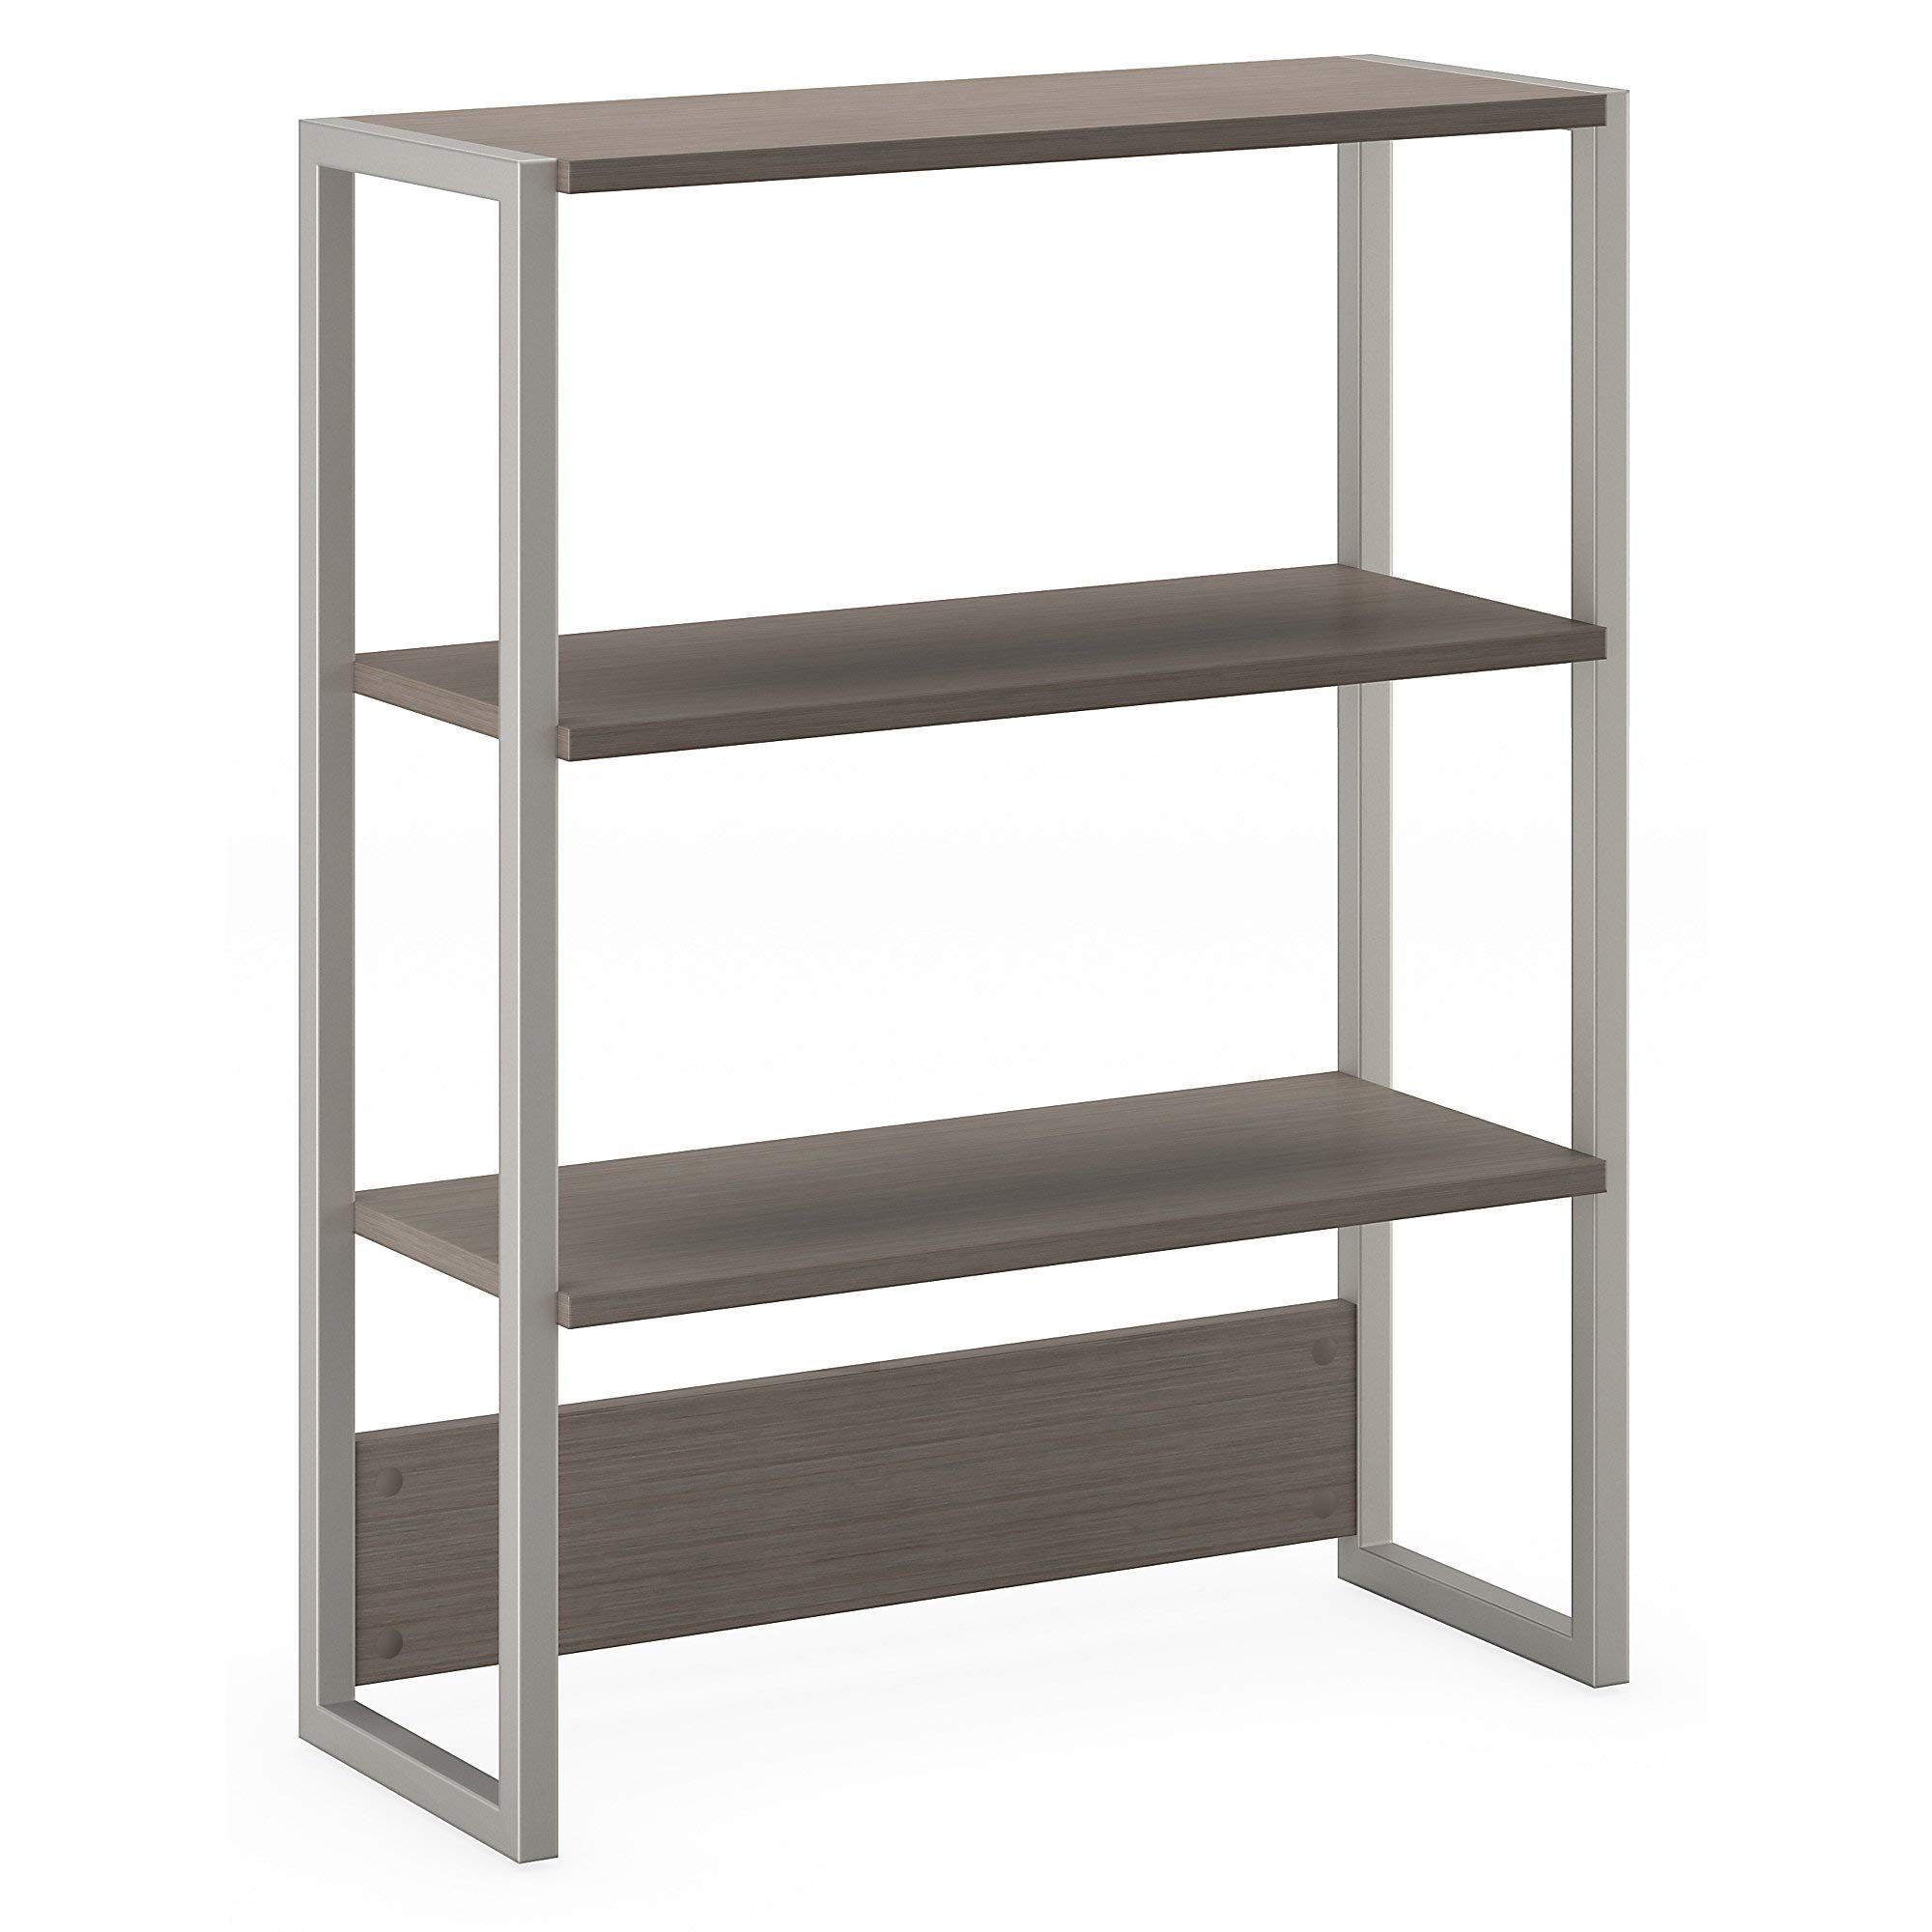 Office by kathy ireland Method Bookcase Hutch in Cocoa